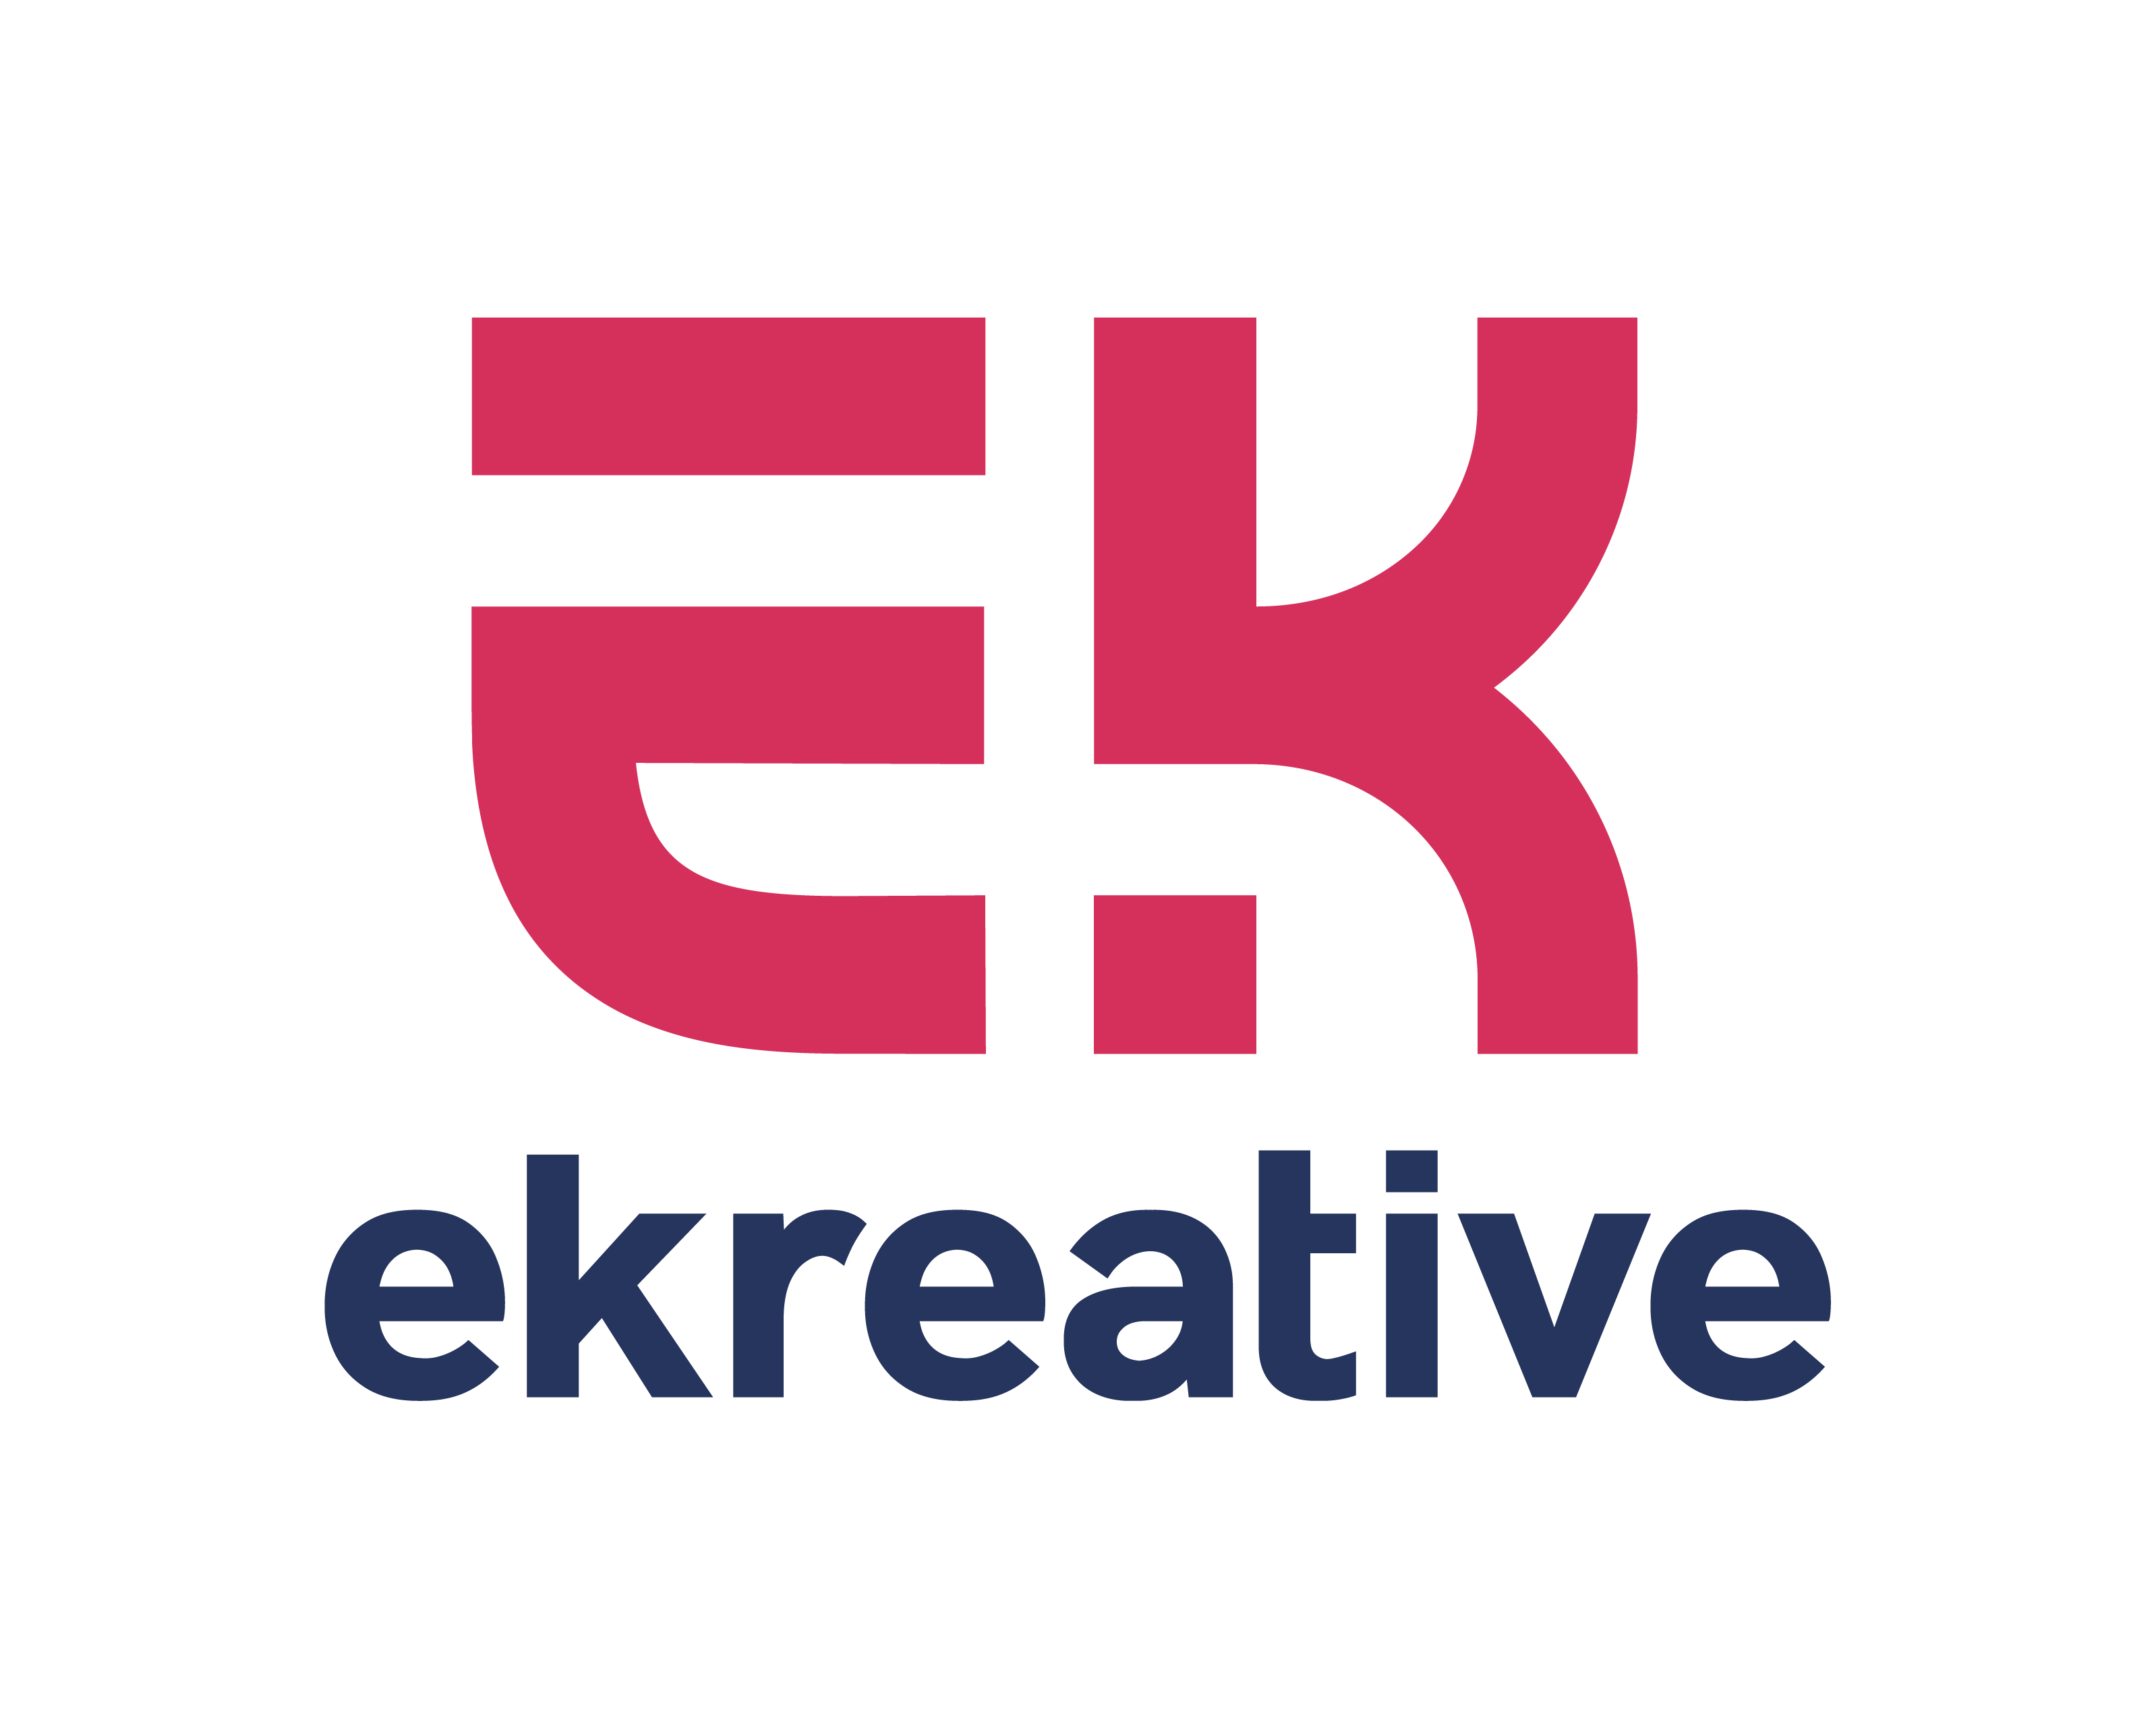 Ekreative Qualified.One in Memphis